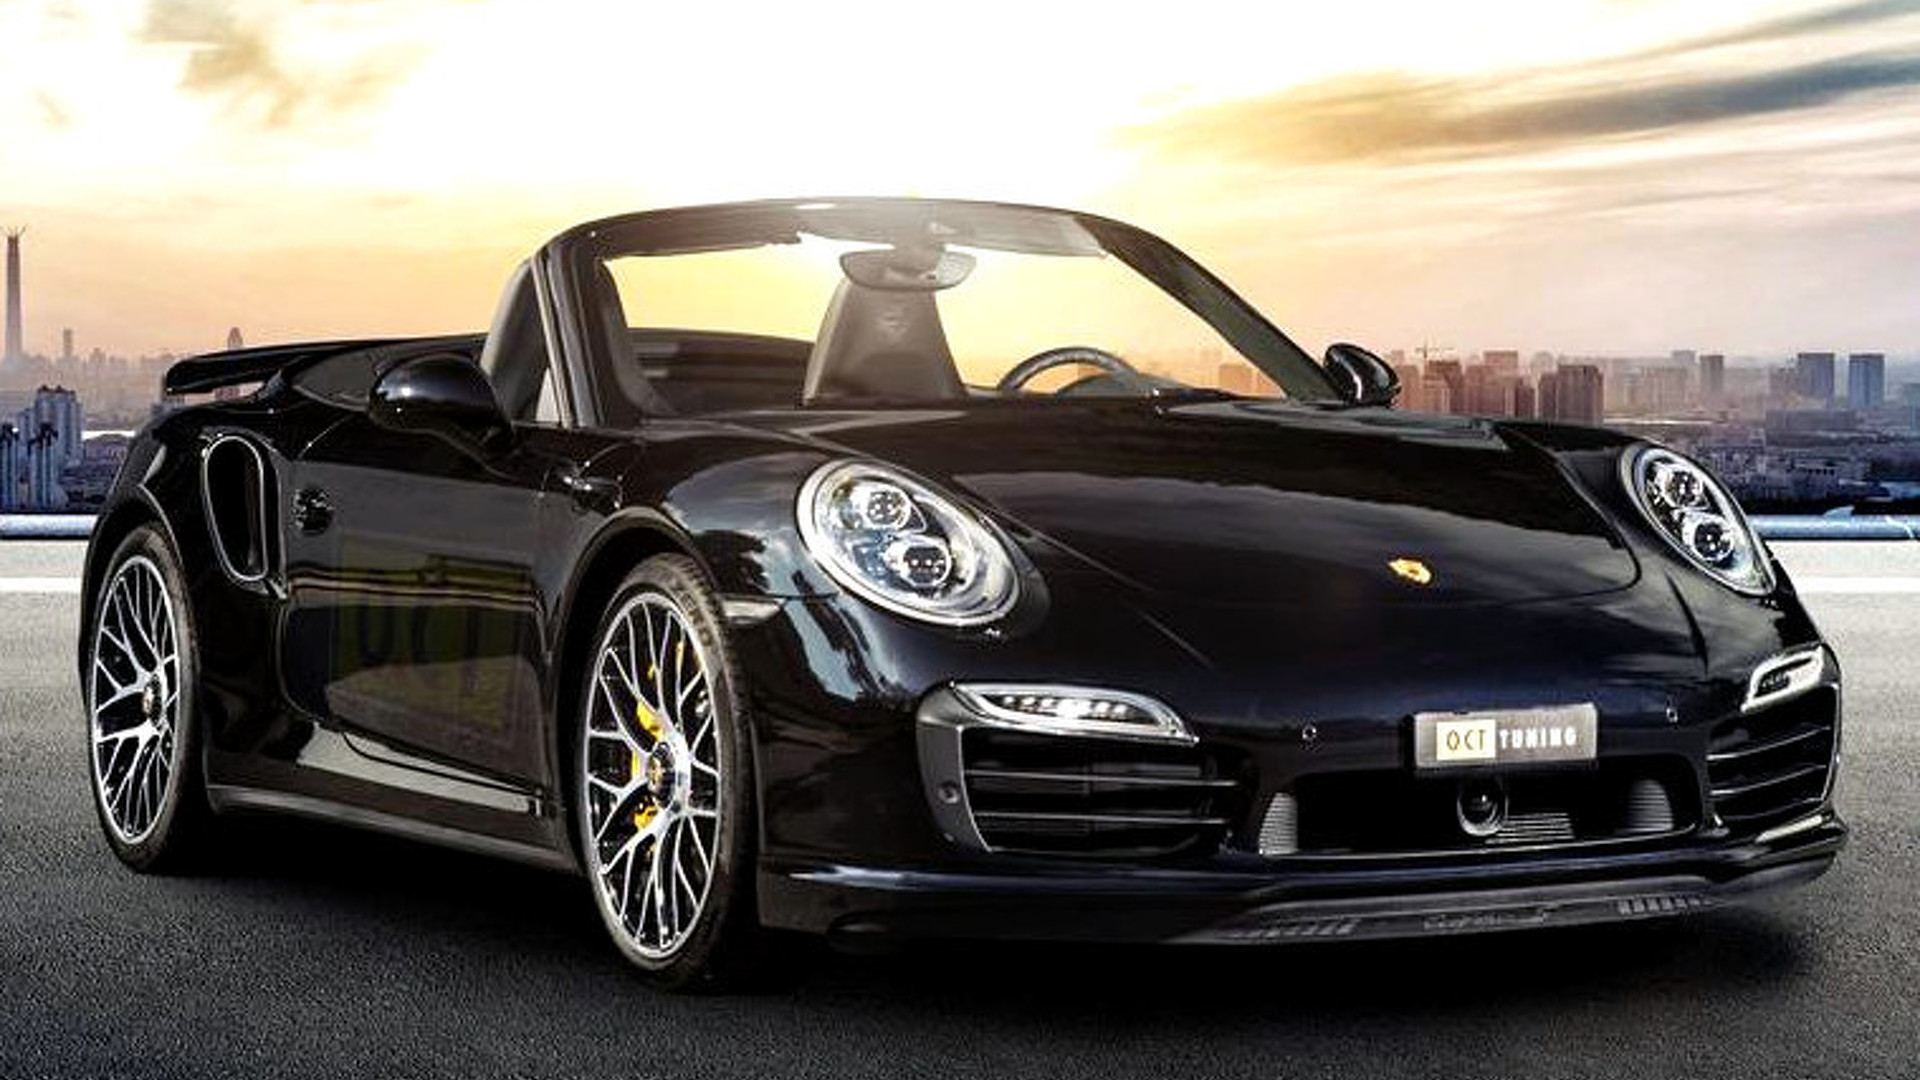 porsche 911 turbo s cabriolet by o ct tuning dialed to 669 ps and 880 nm. Black Bedroom Furniture Sets. Home Design Ideas